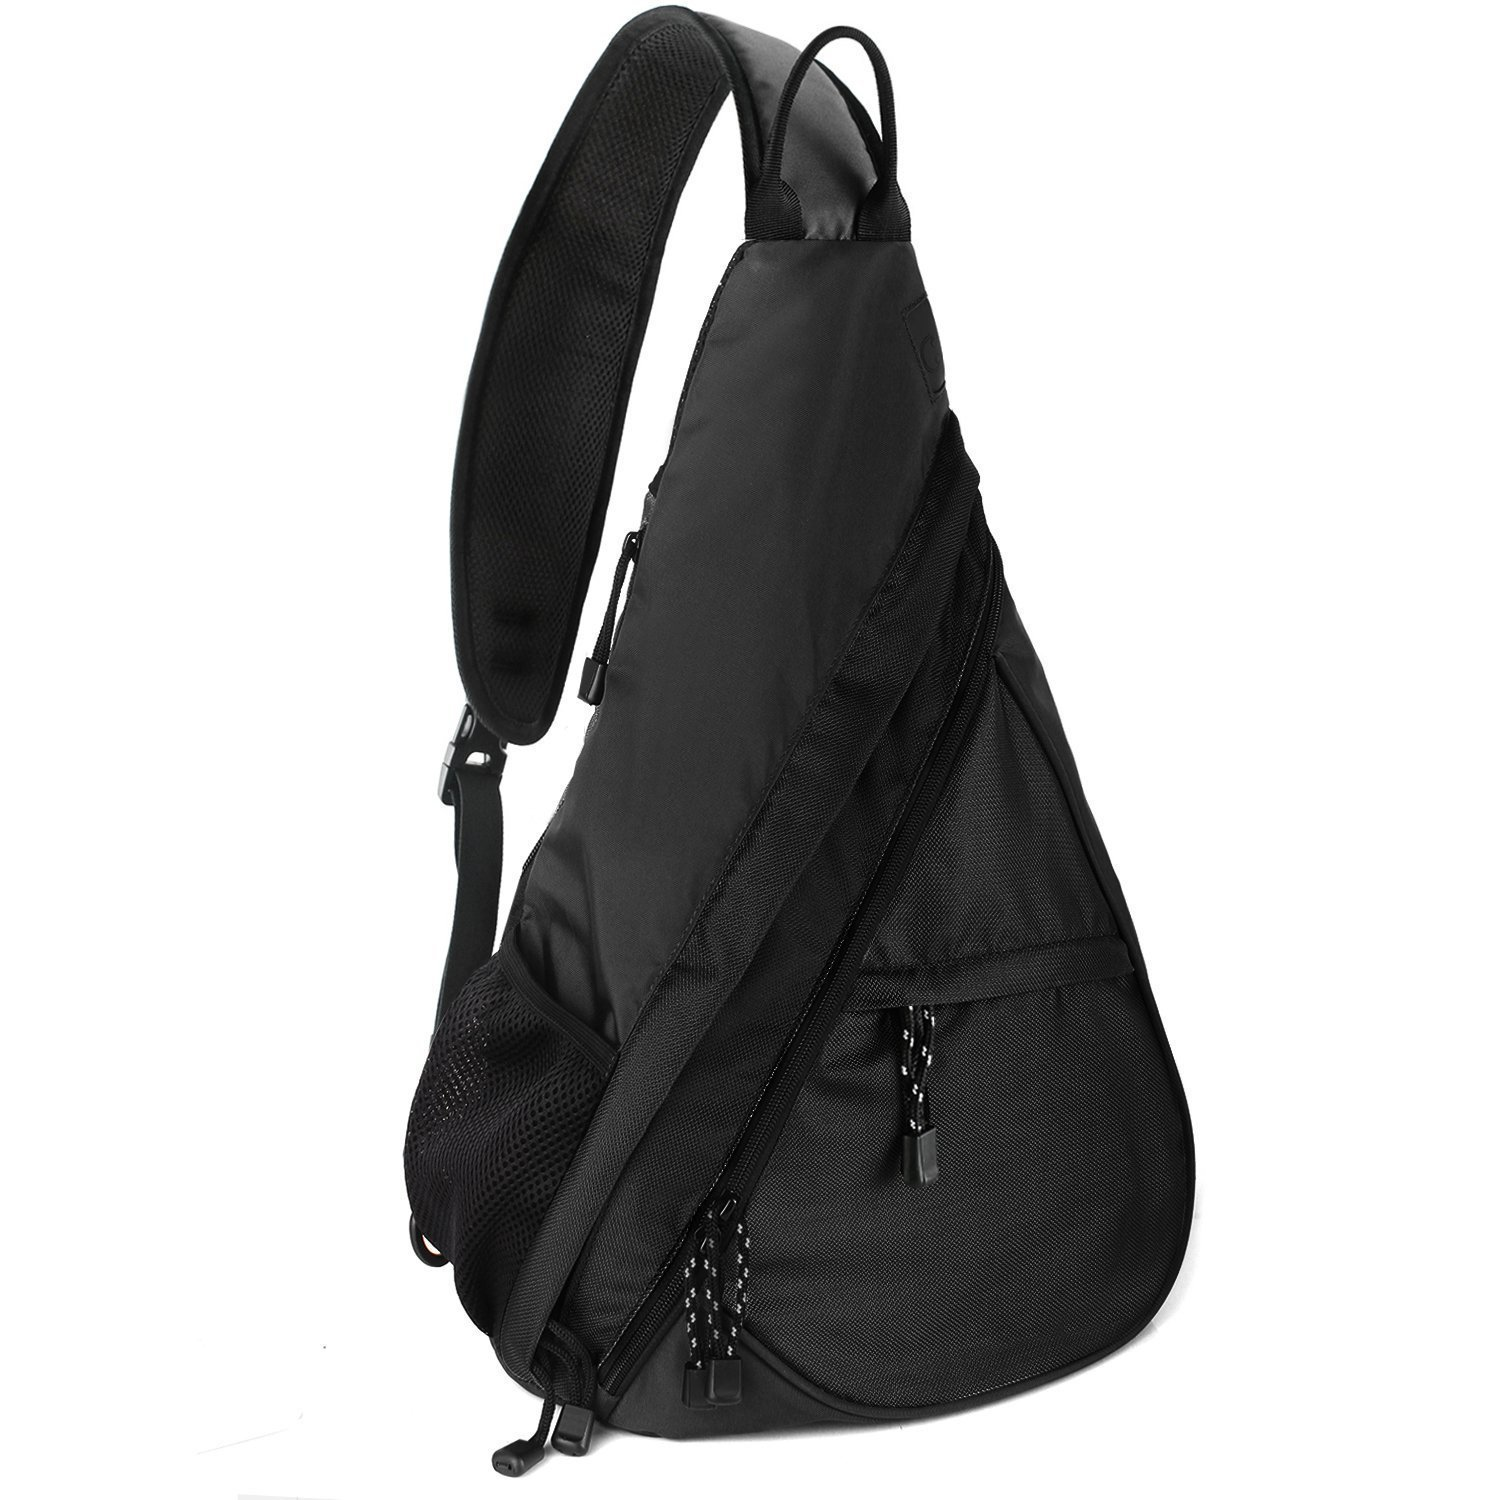 Unigear Shoulder Chest Crossbody Sling Bag Pack Backpack for Men Women Girls Boys (Black)